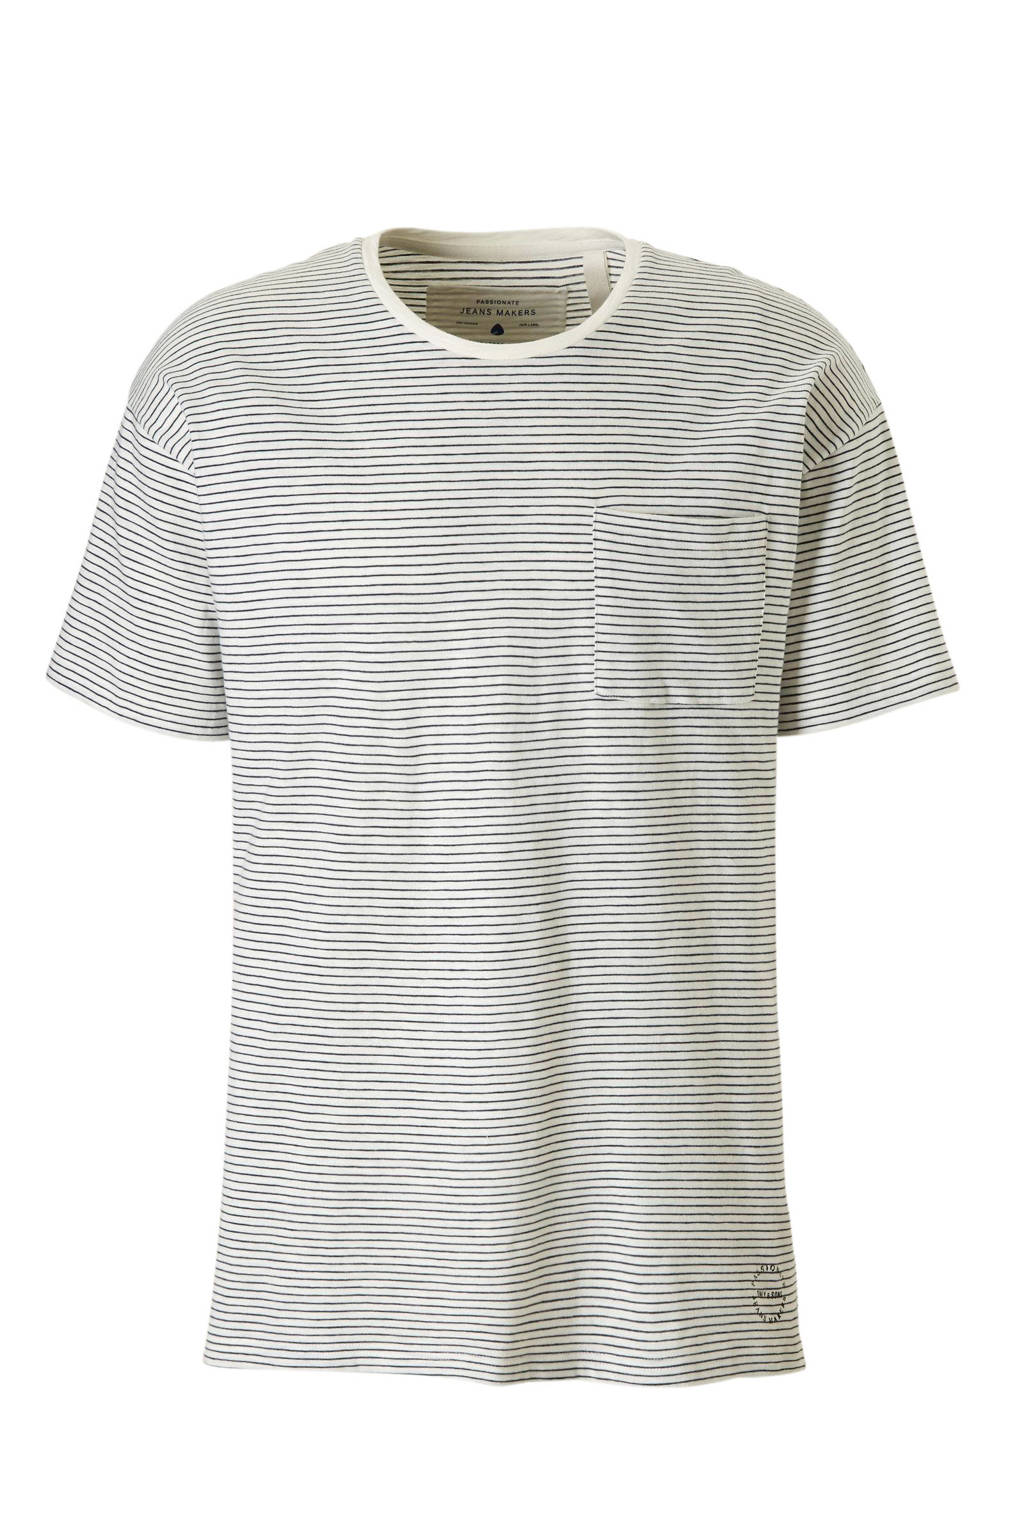 ONLY & SONS T-shirt, Wit